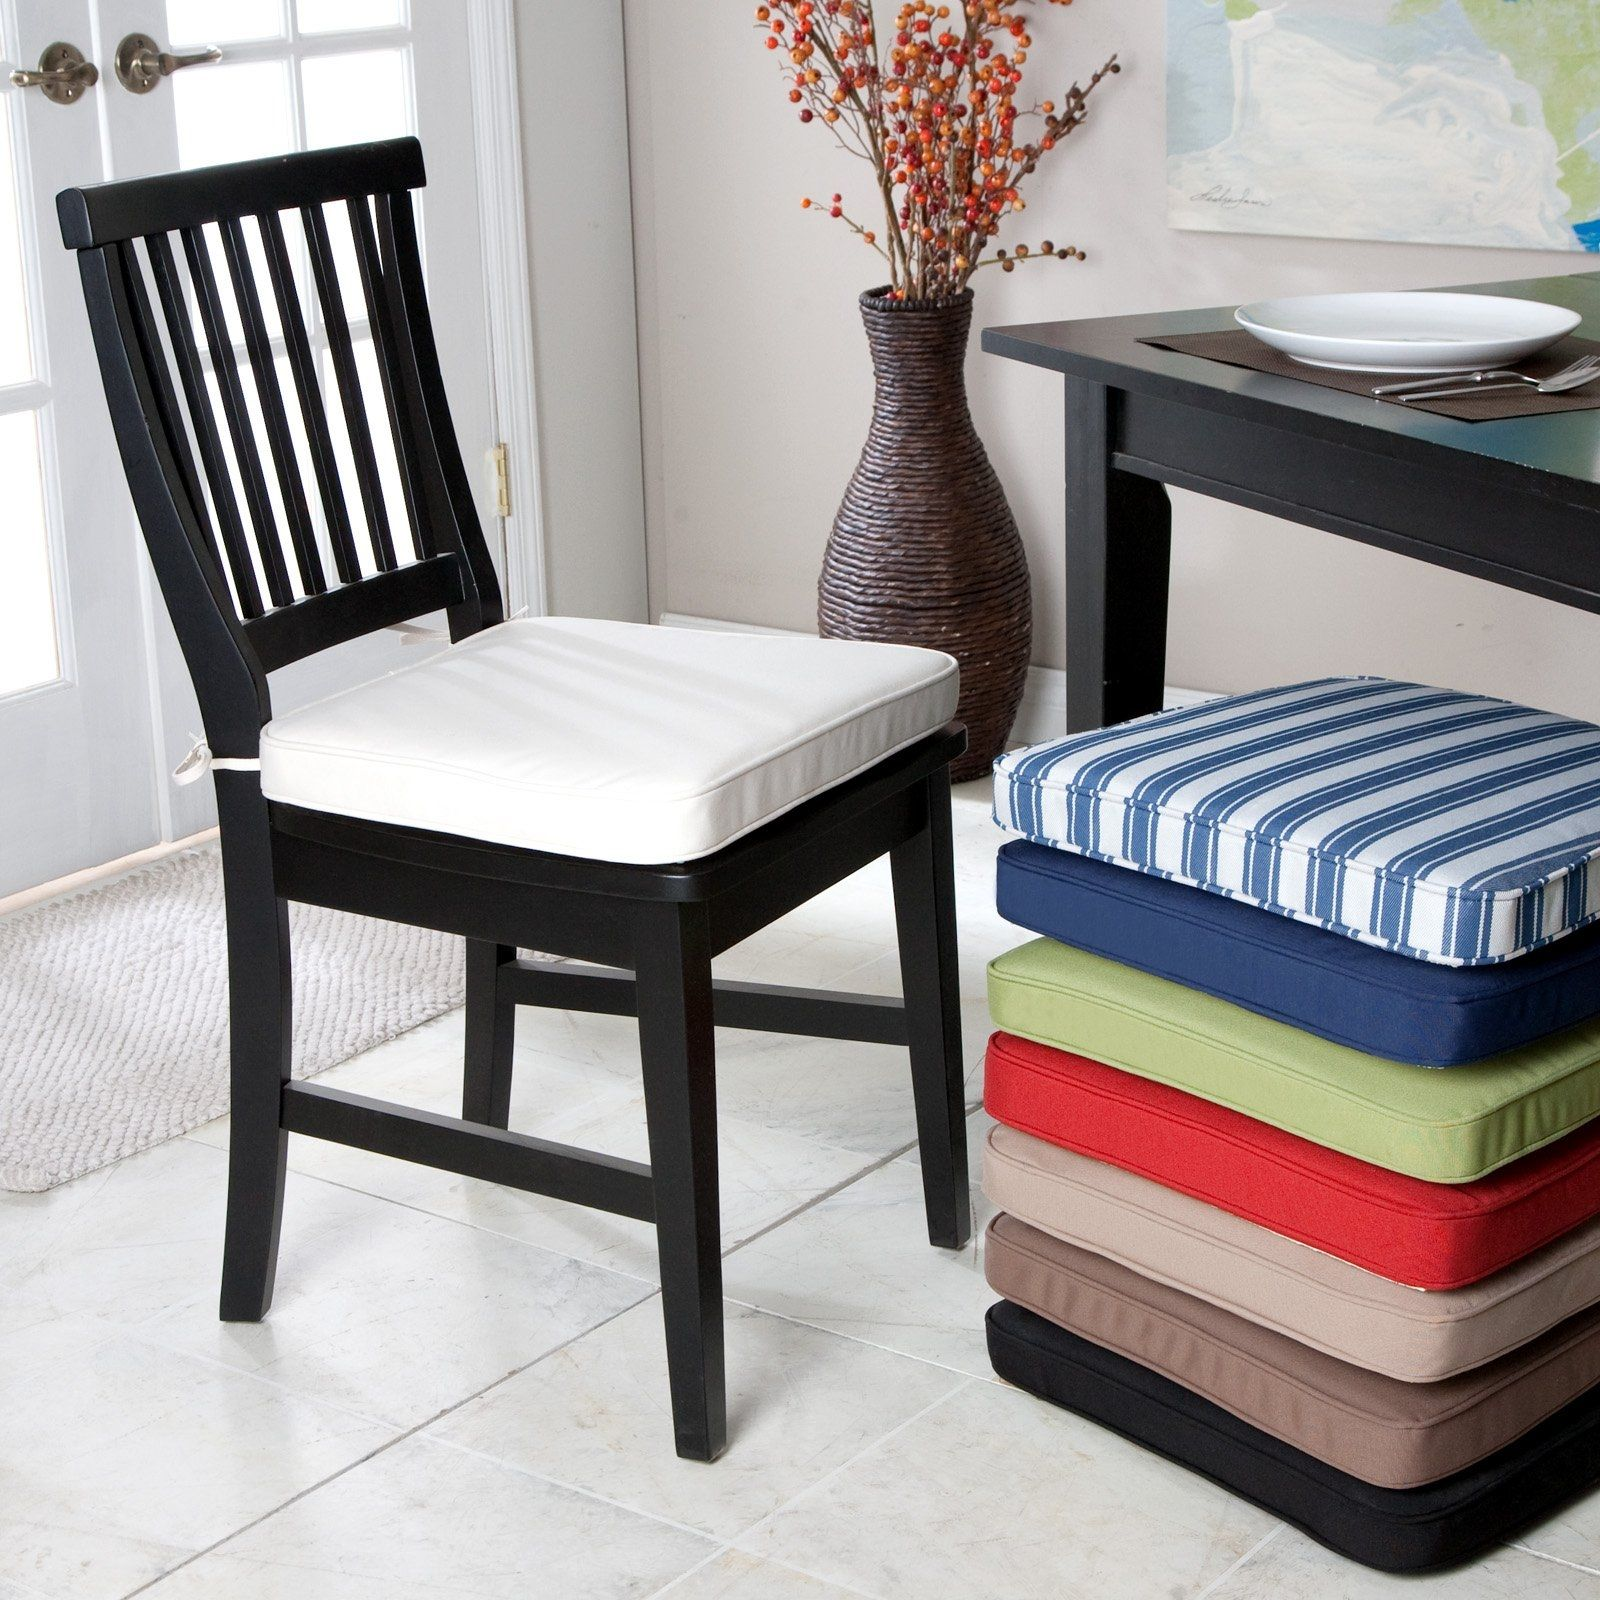 dining room chair pad covers drexel heritage chairs for sale seat cushion http images11 com pinterest